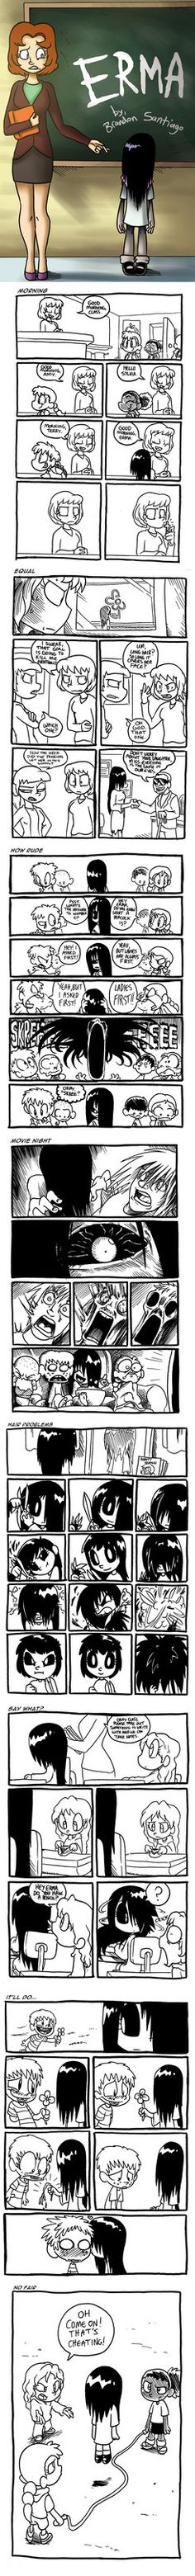 """Something that I had done for freshman year of college. Thought this might be interesting to post up. Just a series of mini comics that dives into one little scenario: """" What would happen if a blac..."""